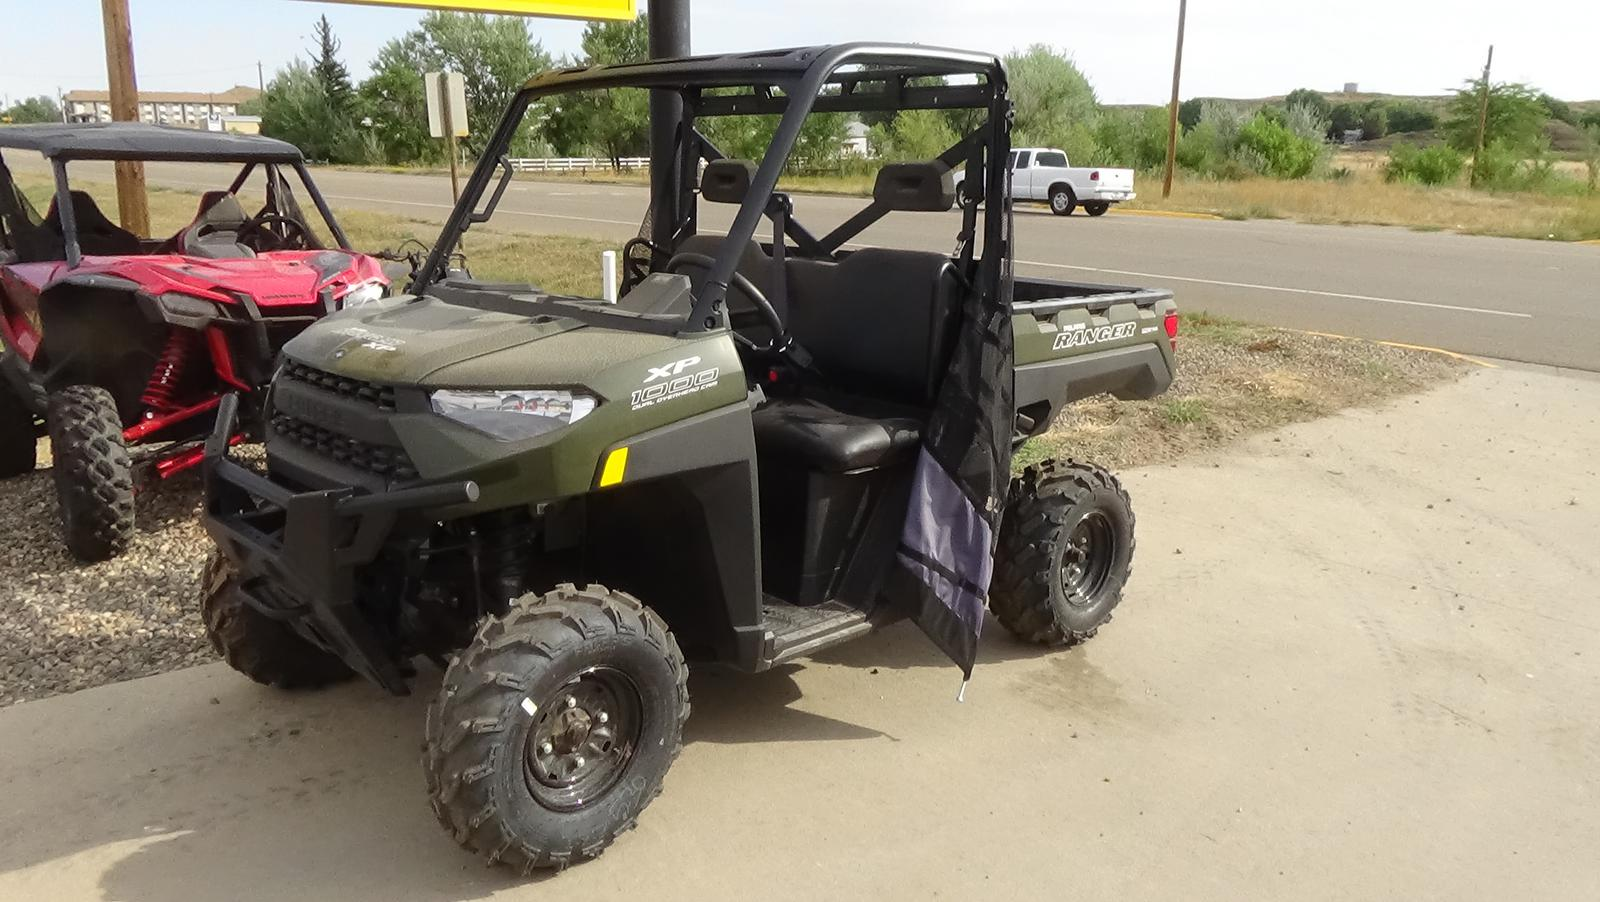 2019 polaris industries ranger xp� 1000 eps - sage green